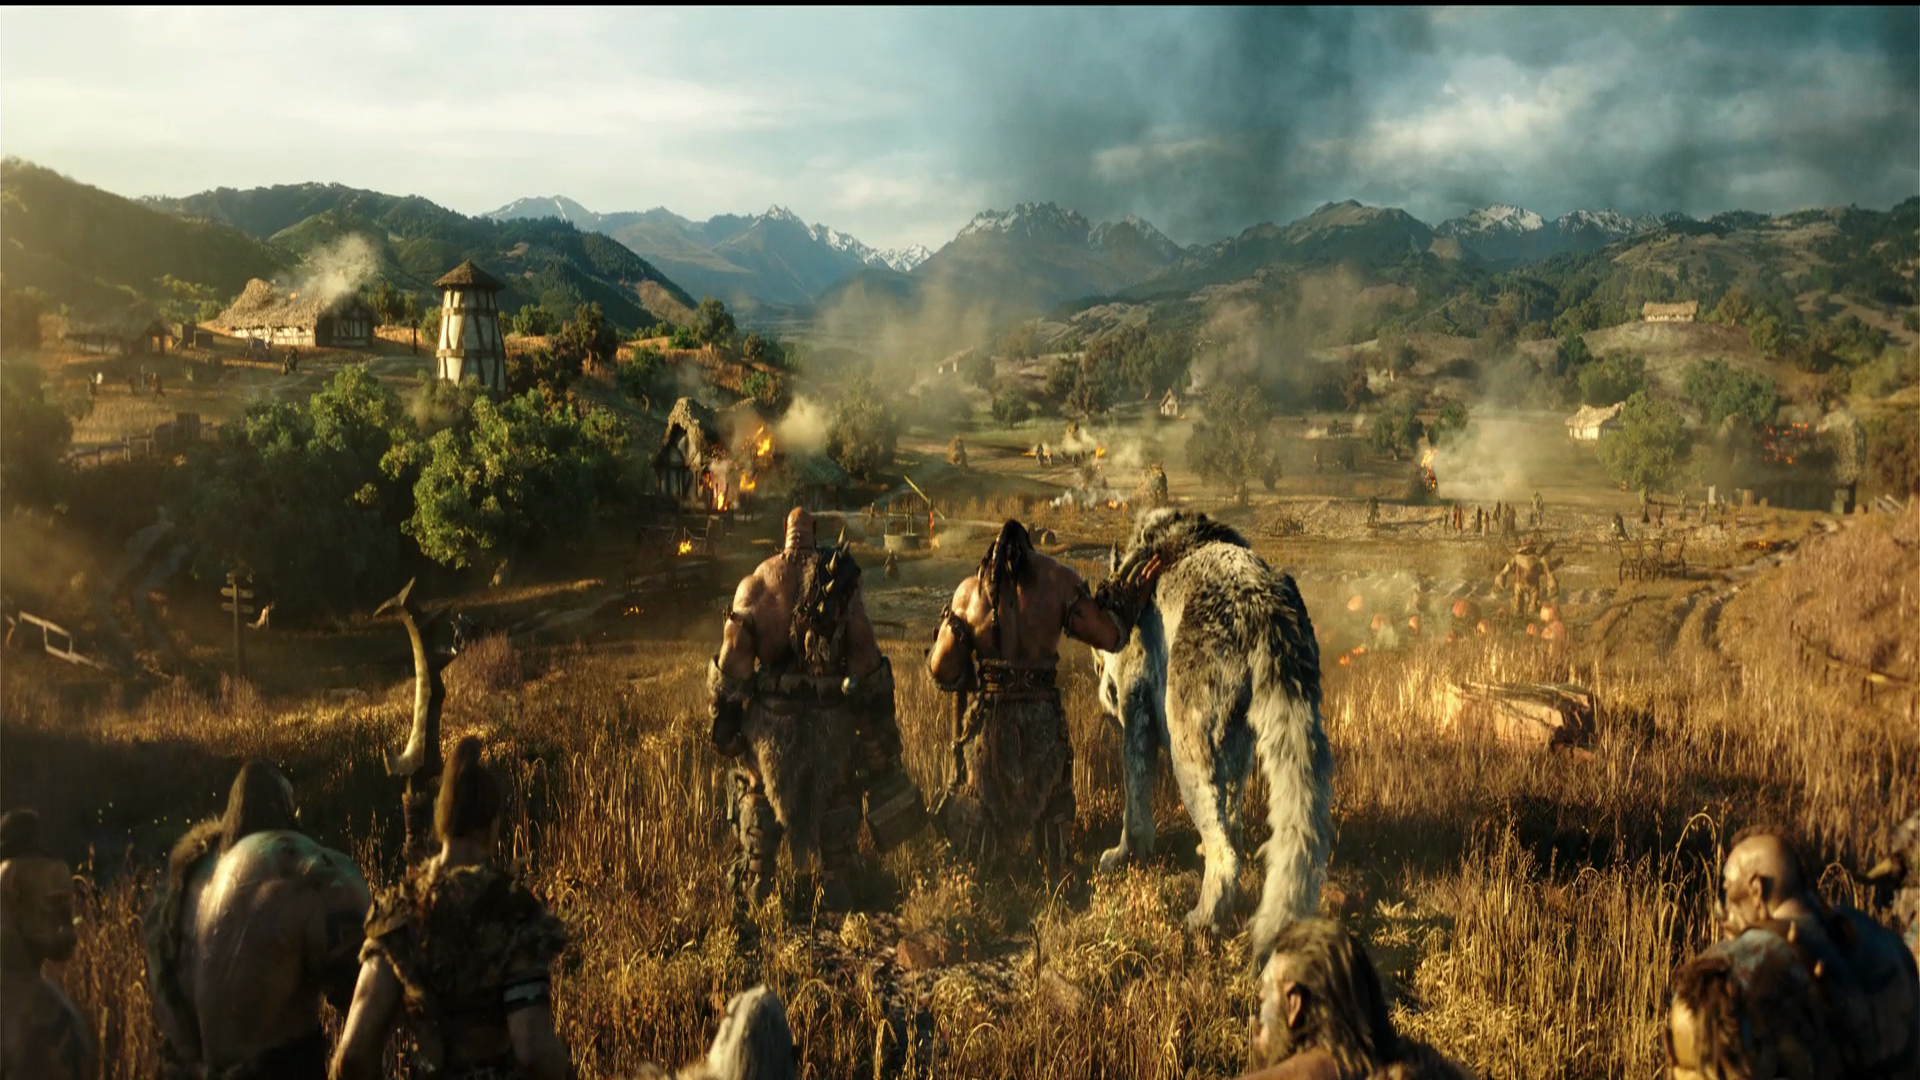 The Warcraft movie first trailer and HD screencaps Movie Wallpapers 1920x1080